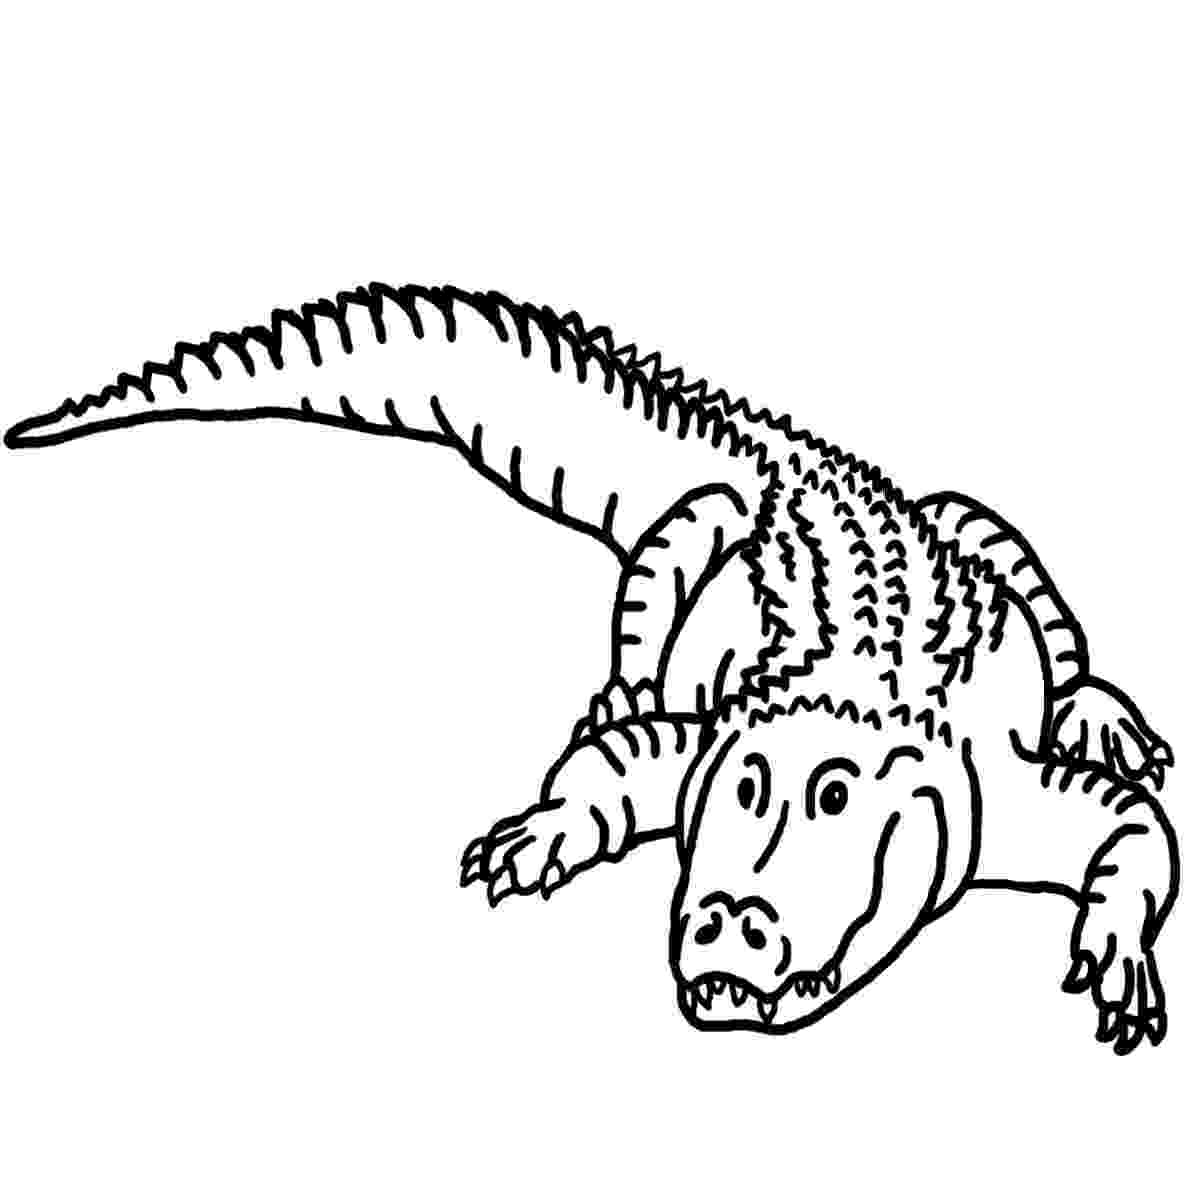 alligator coloring pages free printable alligator coloring pages for kids cool2bkids alligator coloring pages 1 2